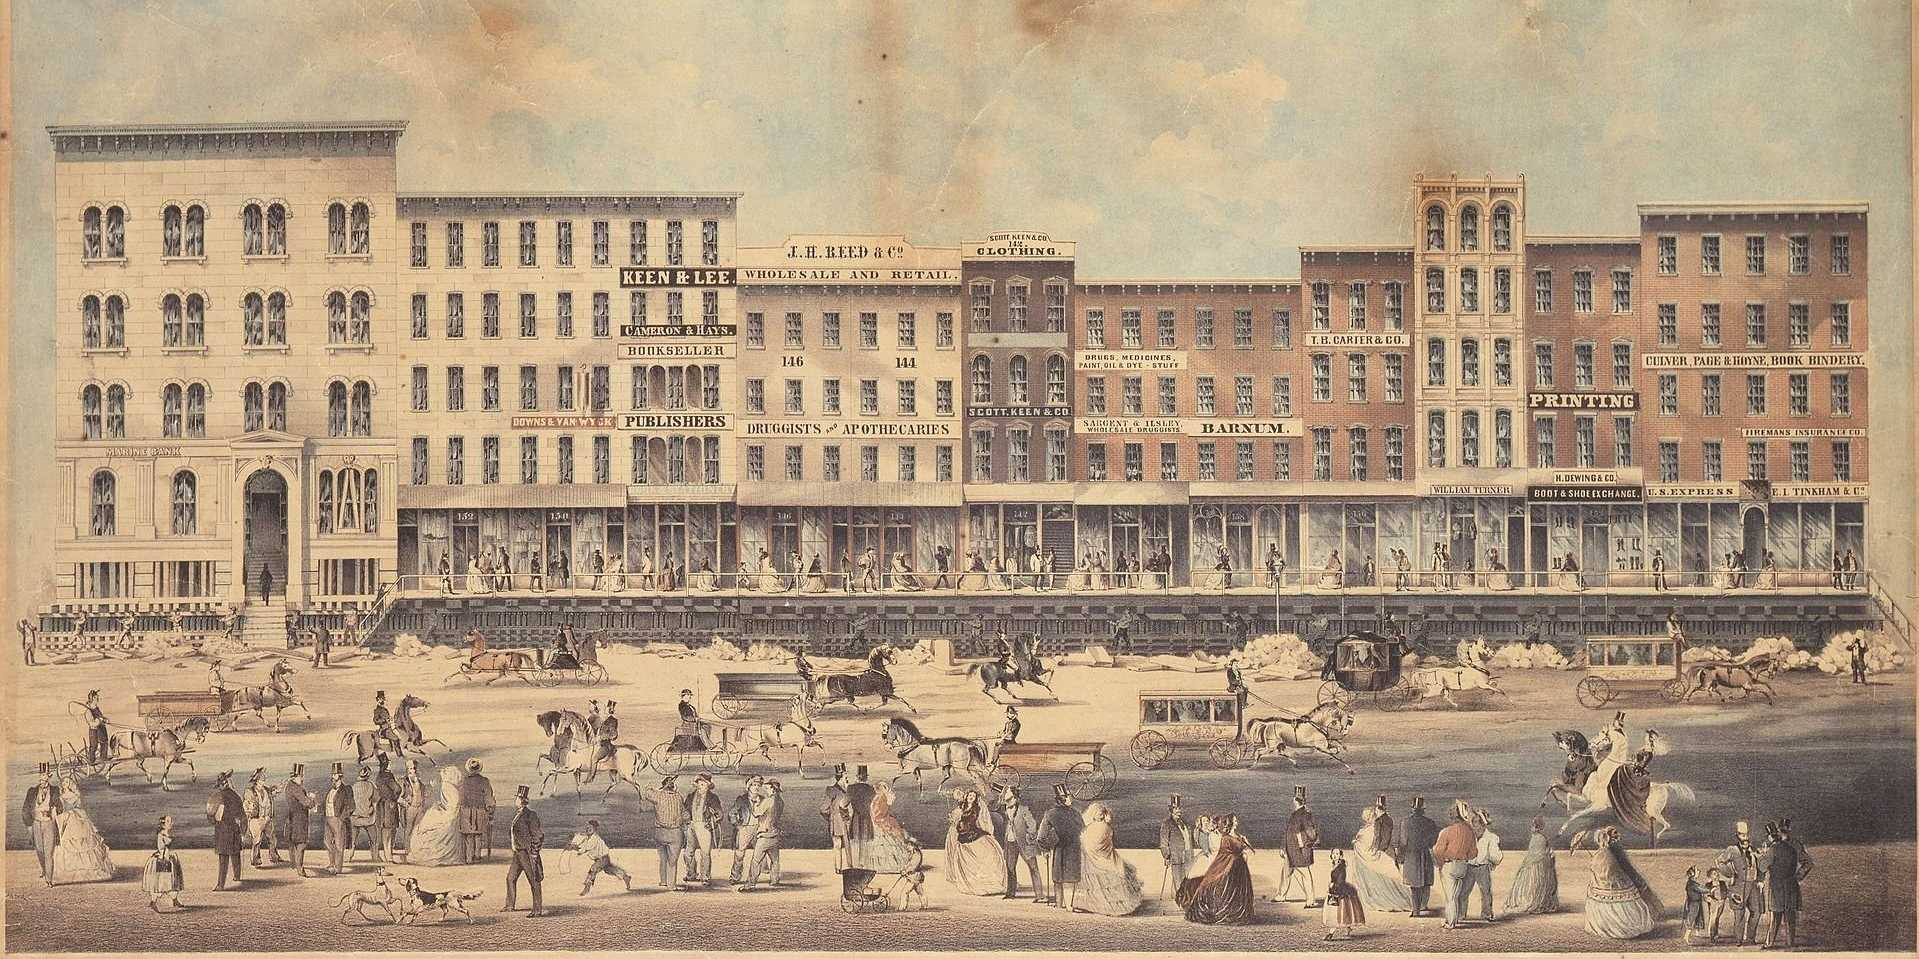 raising lake street in chicago 1850